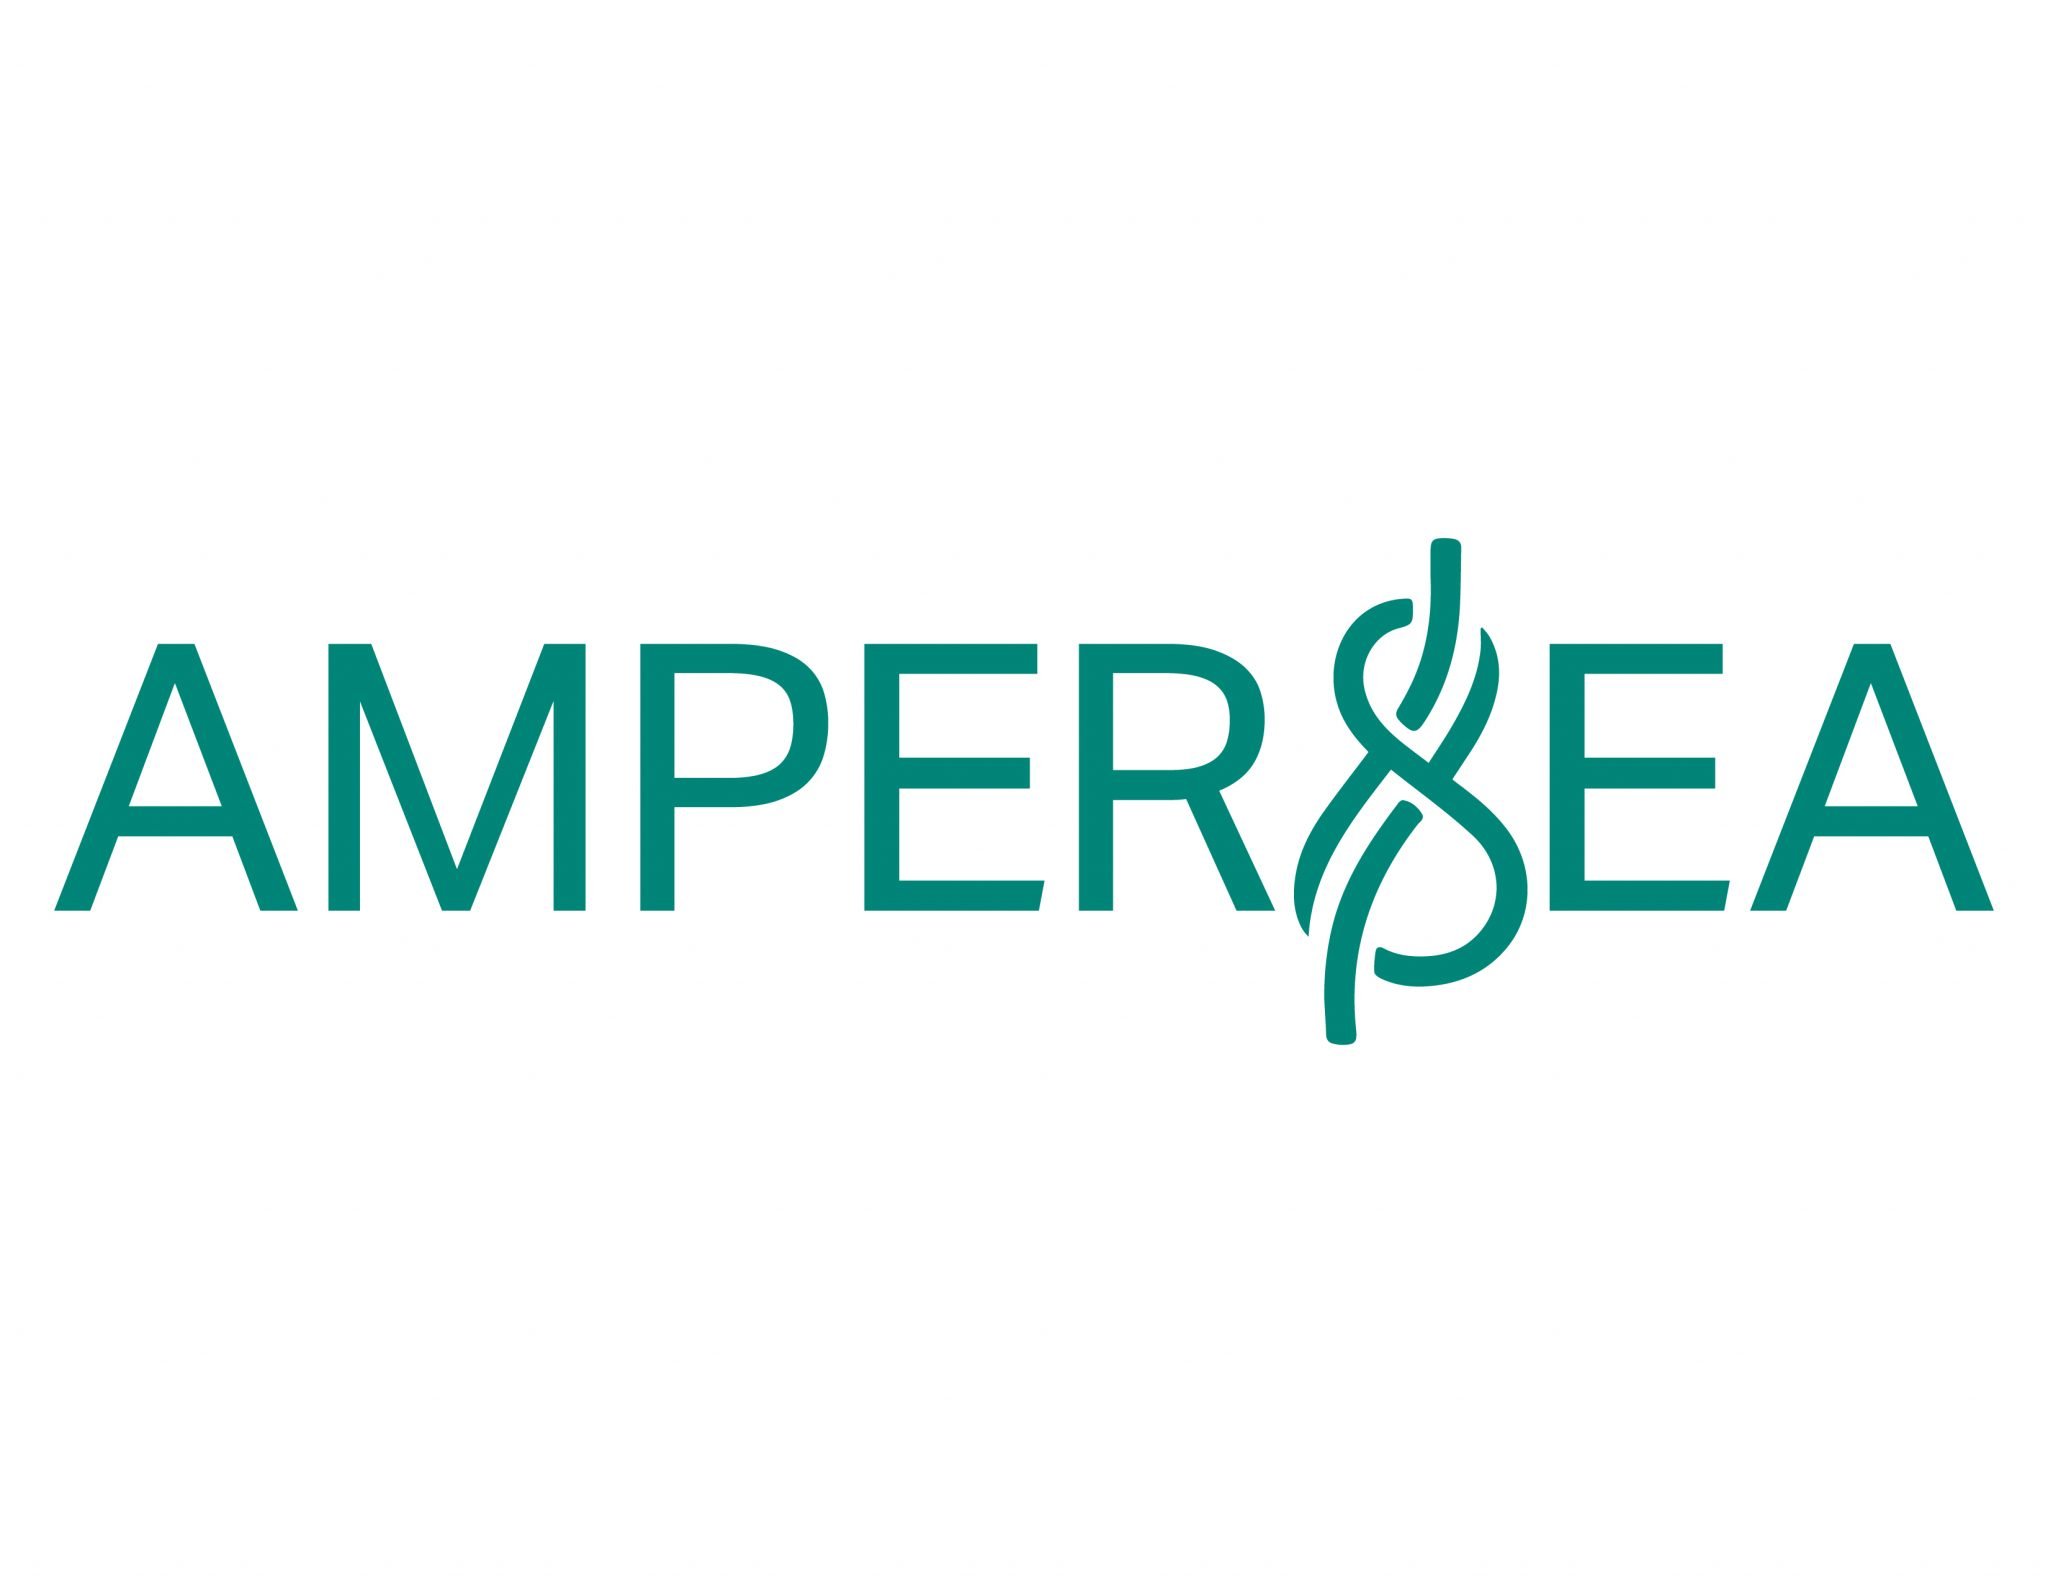 Ampersea